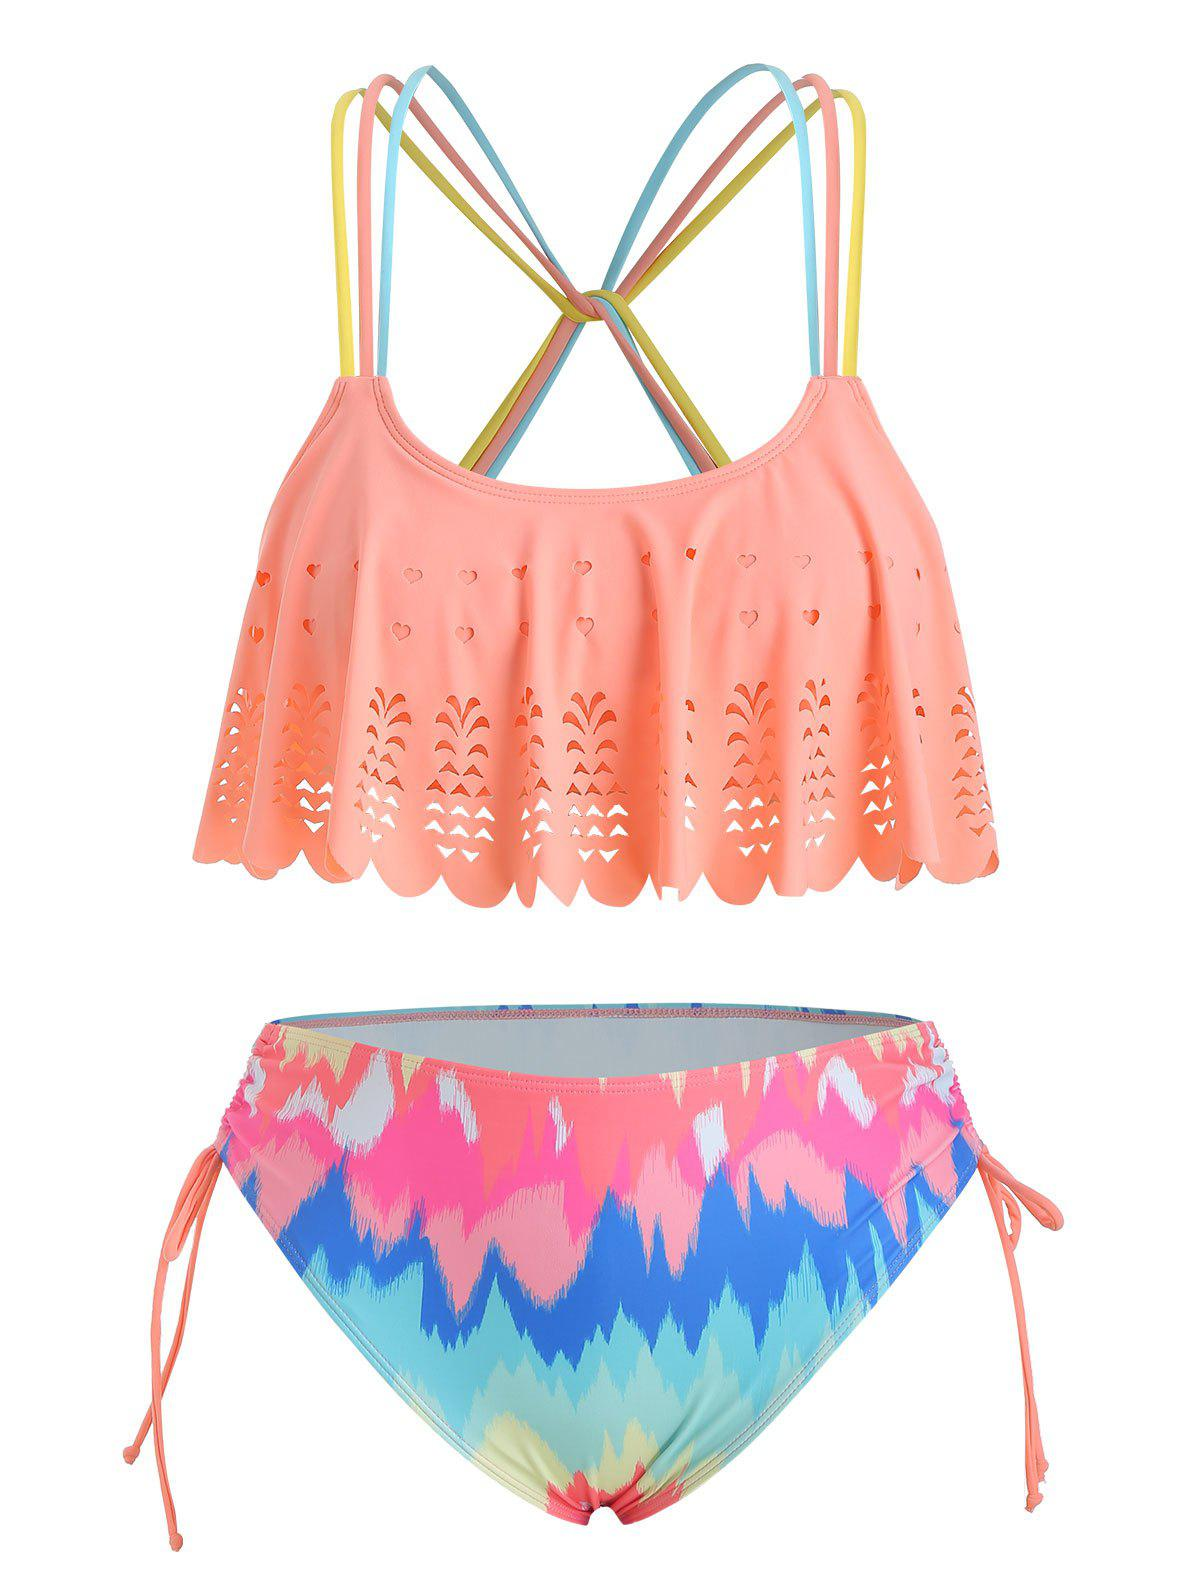 Affordable Plus Size Laser Cut Ruffled Tie Dye Bikini Swimsuit